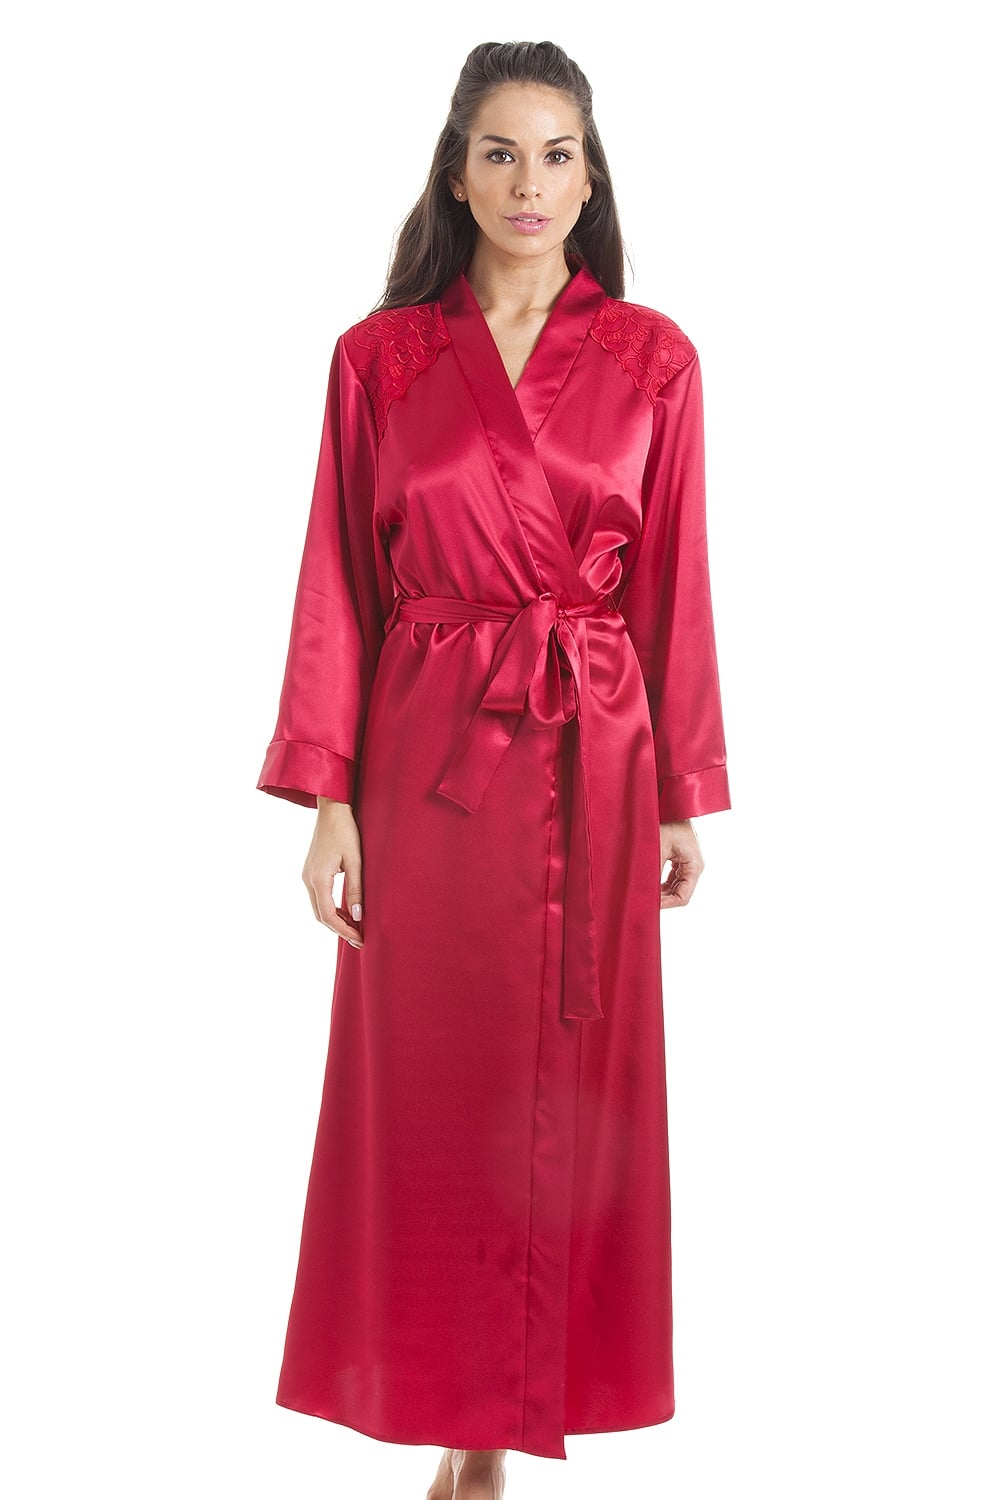 Free shipping and returns on Women's Red Dresses at 440v.cf